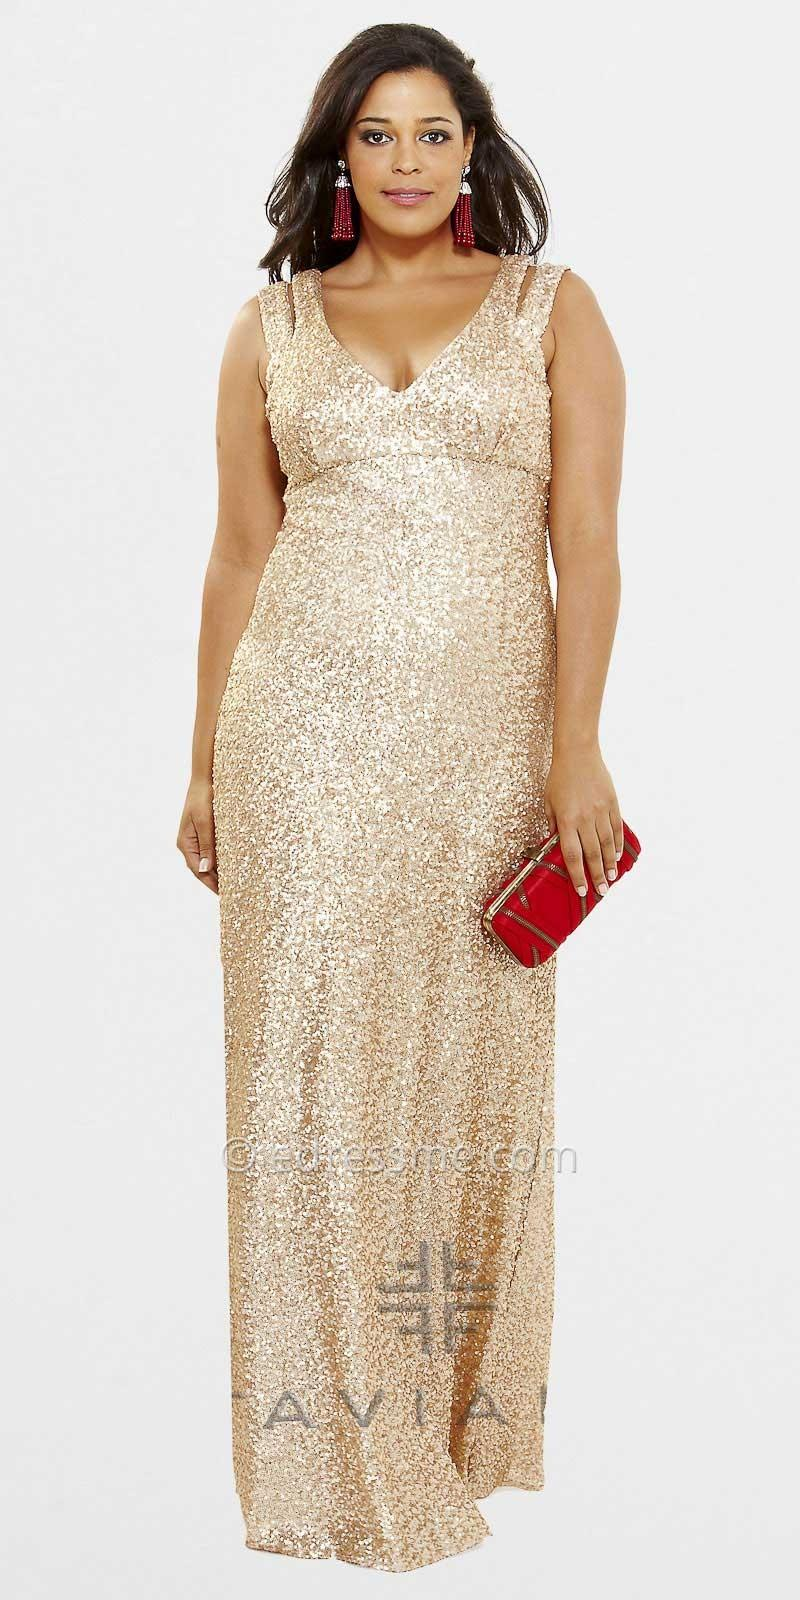 2016 Plus Size Formal Prom Evening Dress Sheer Gold Sequin